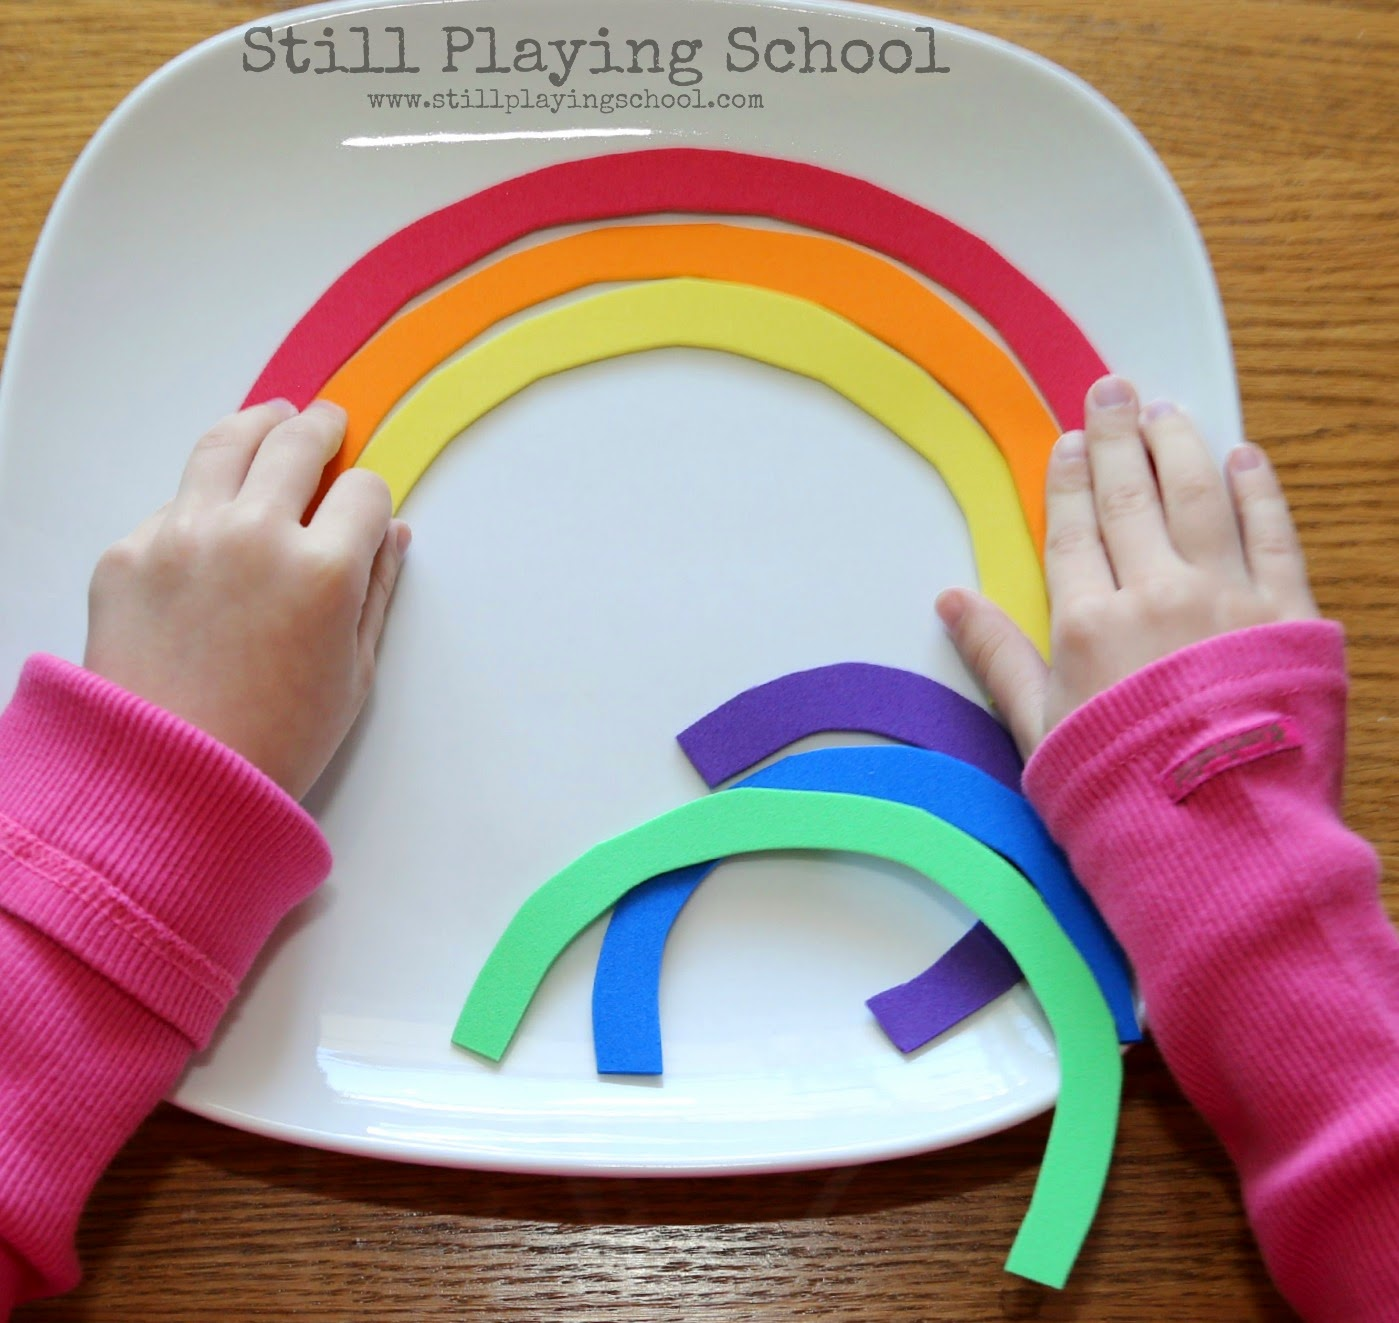 Rainbow colors in order pictures - I Cut The Color Arcs From Craft Foam This Puzzle Would Be Entertaining And Educational For Kids Left As It Is To Learn Colors And Rainbow Order